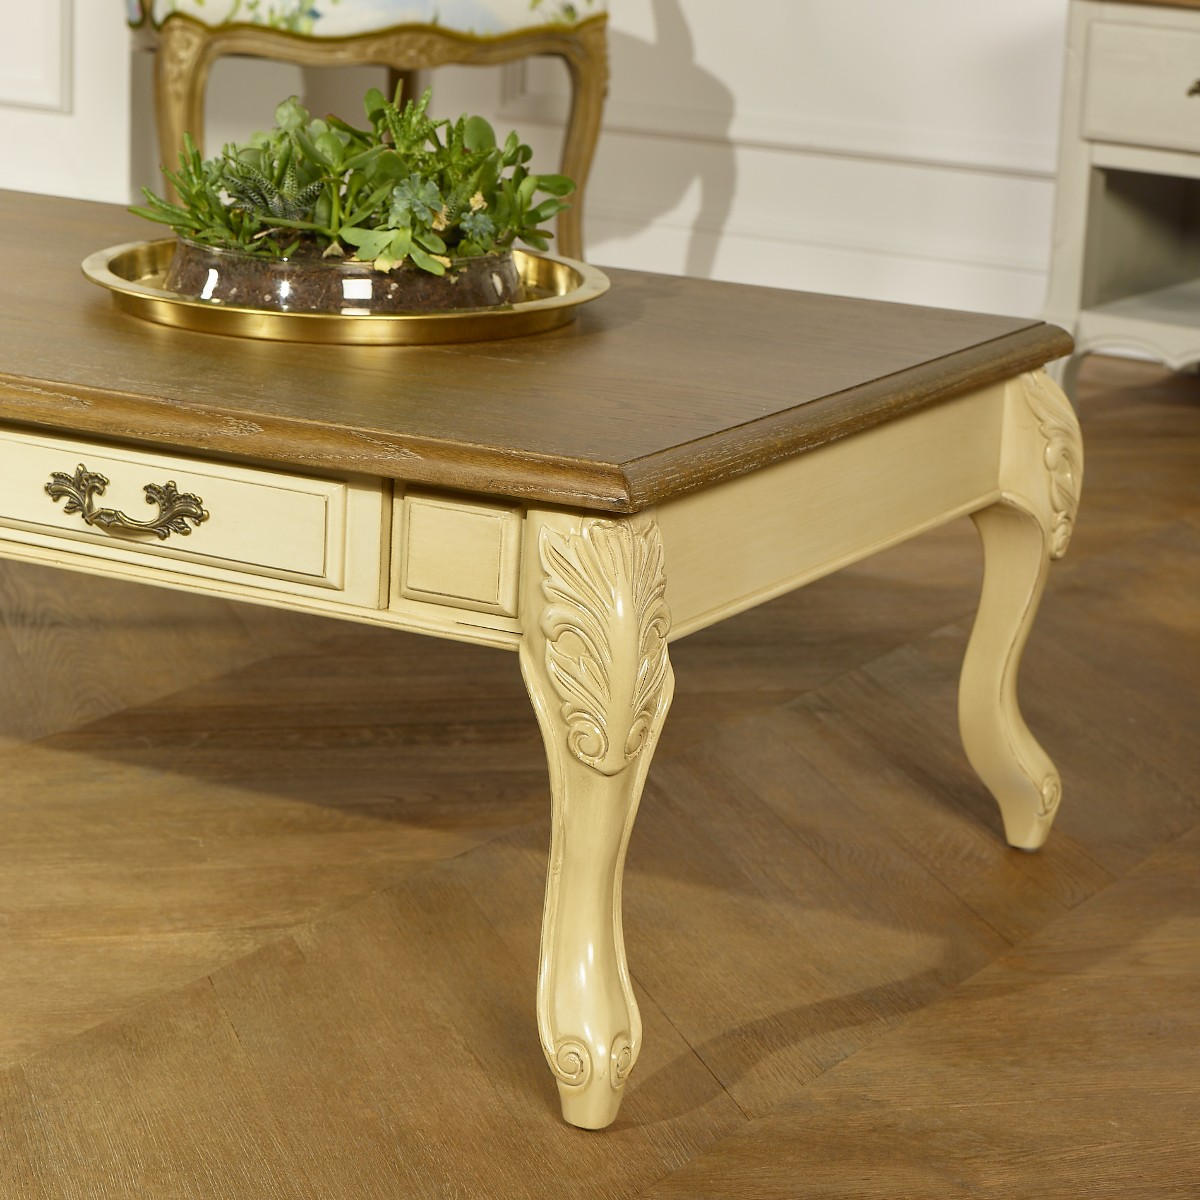 Table Basse Chene Patine Antiquaire Blanc Ivoire Marianne